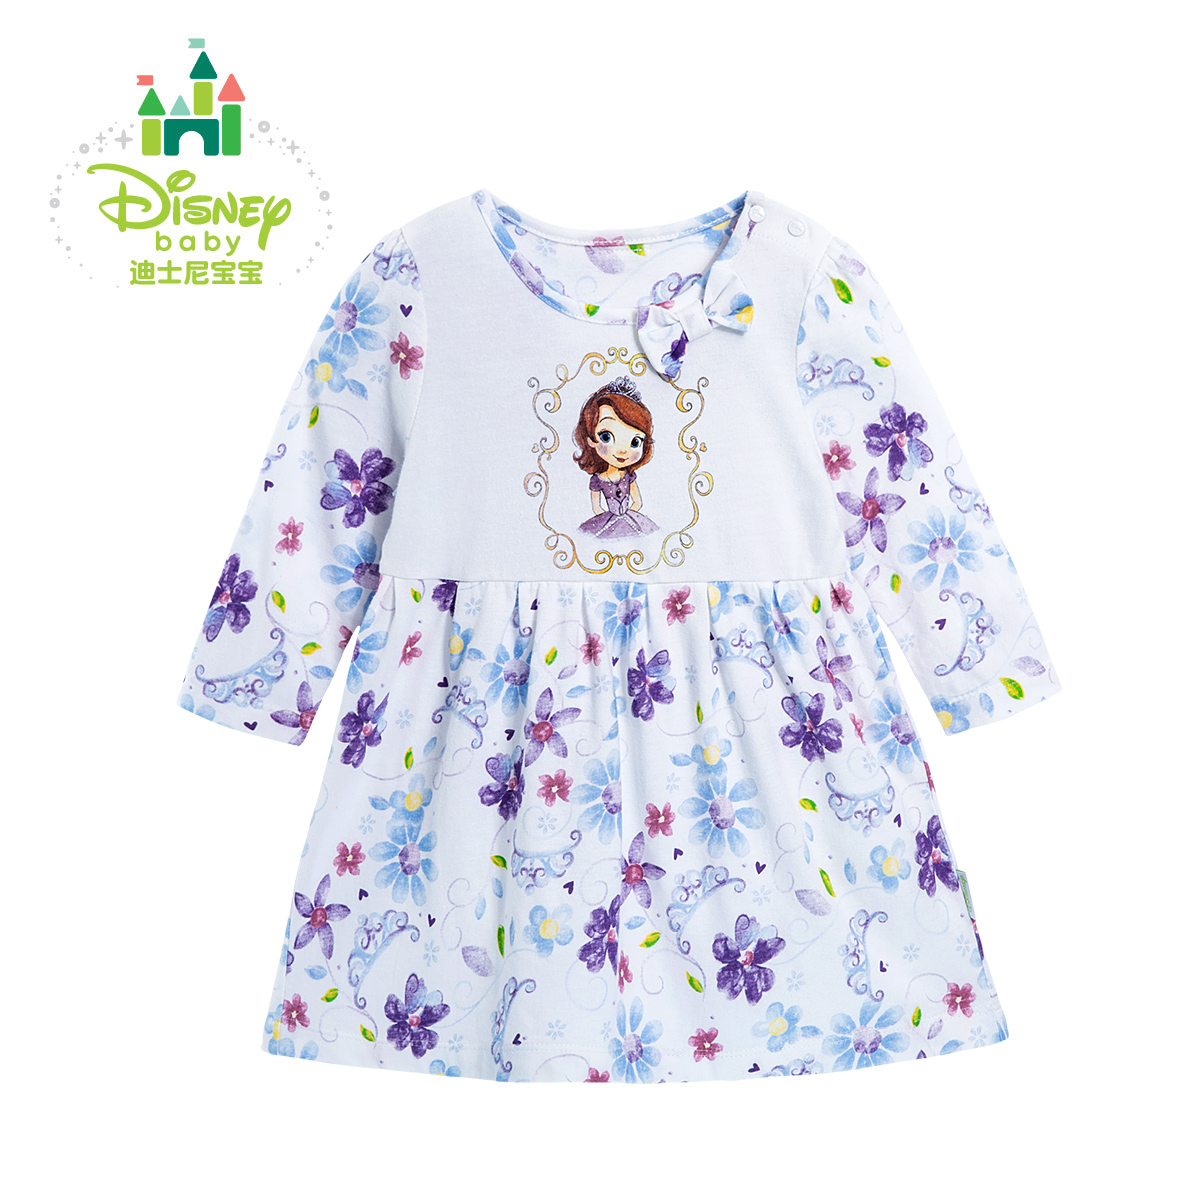 Disney Baby Girls Dress Spring Long Sleeve Bow Baby Party Birthday Girls Kids Children Cotton Wedding Princess Dress db4368 davebella spring new girls cotton floral dress princess dress children boutique dress sakura dress